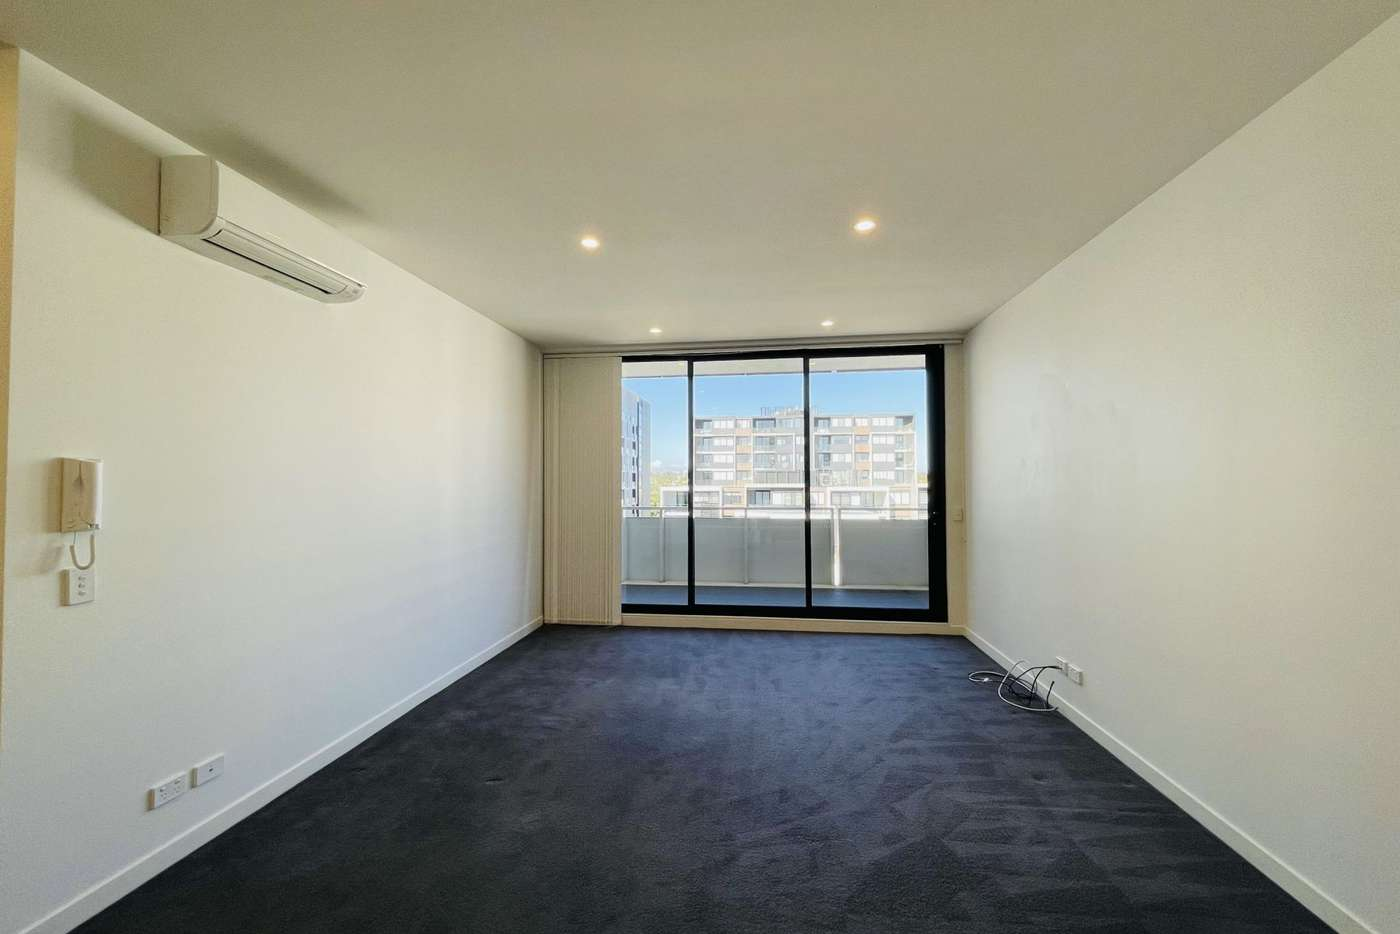 Main view of Homely apartment listing, 603/101 Lord Sheffield Circuit, Penrith NSW 2750